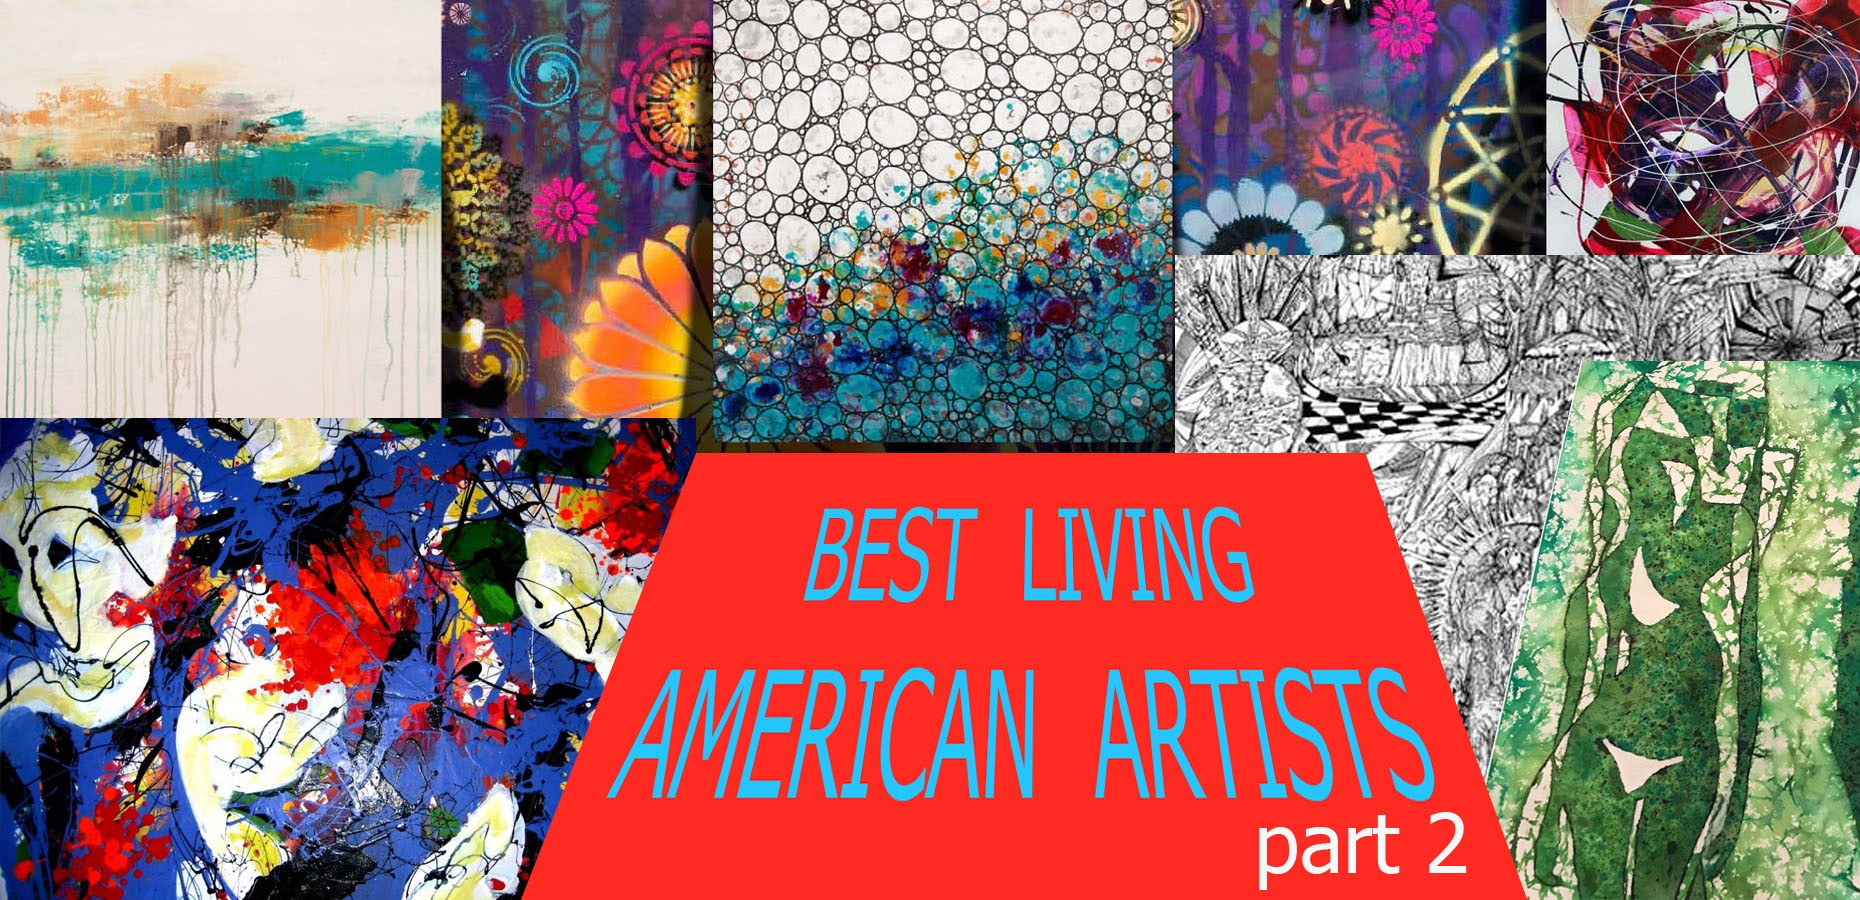 Best Living American Artists, Part 2: WINFIELD, HOLZNECHT